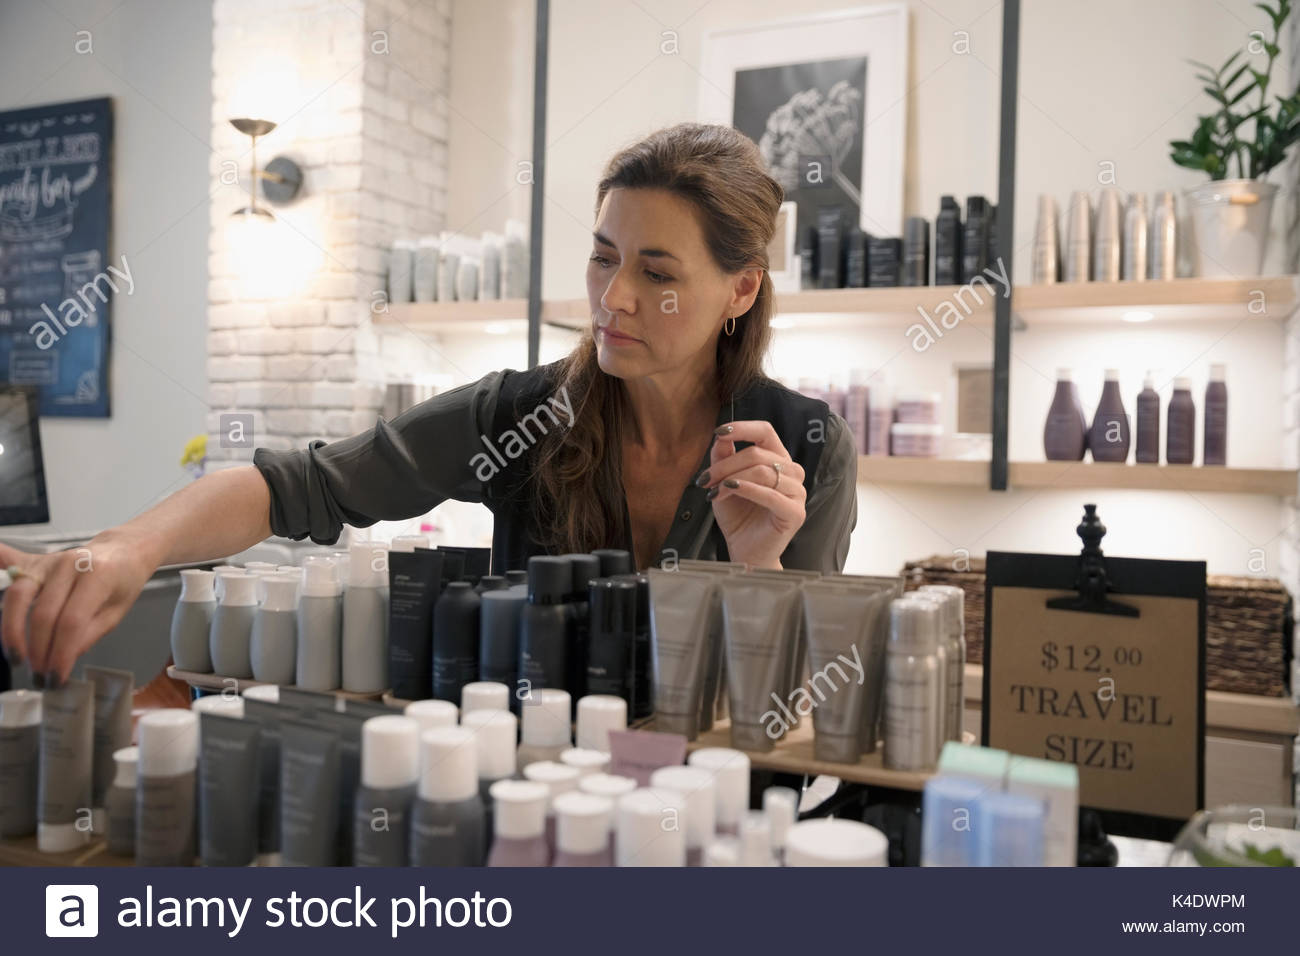 Female salon shop owner arranging beauty product display - Stock Image